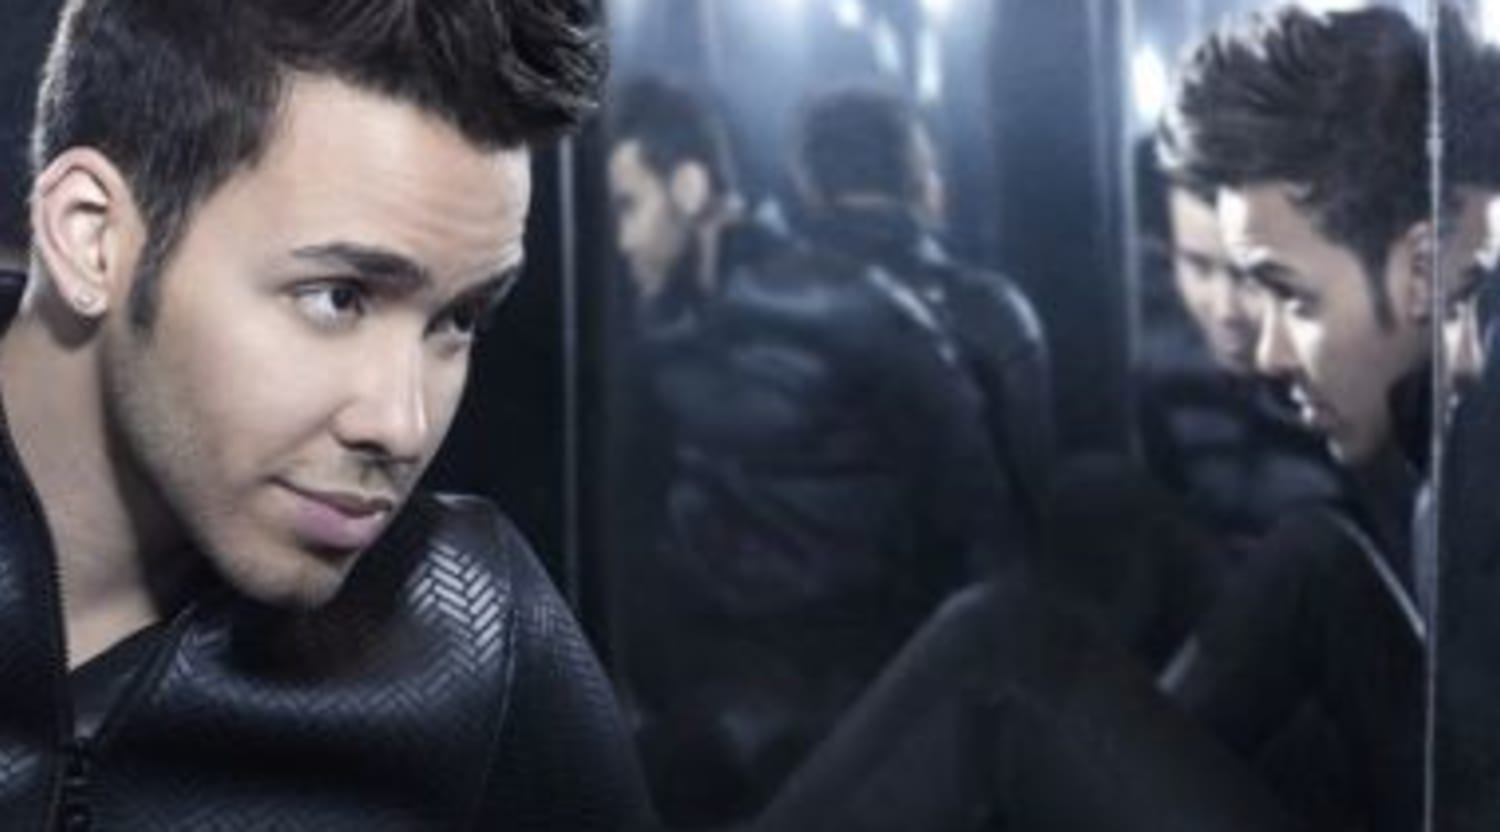 Prince Royce Tour Dates 2020 Prince Royce Tickets   Prince Royce Tour Dates on StubHub!